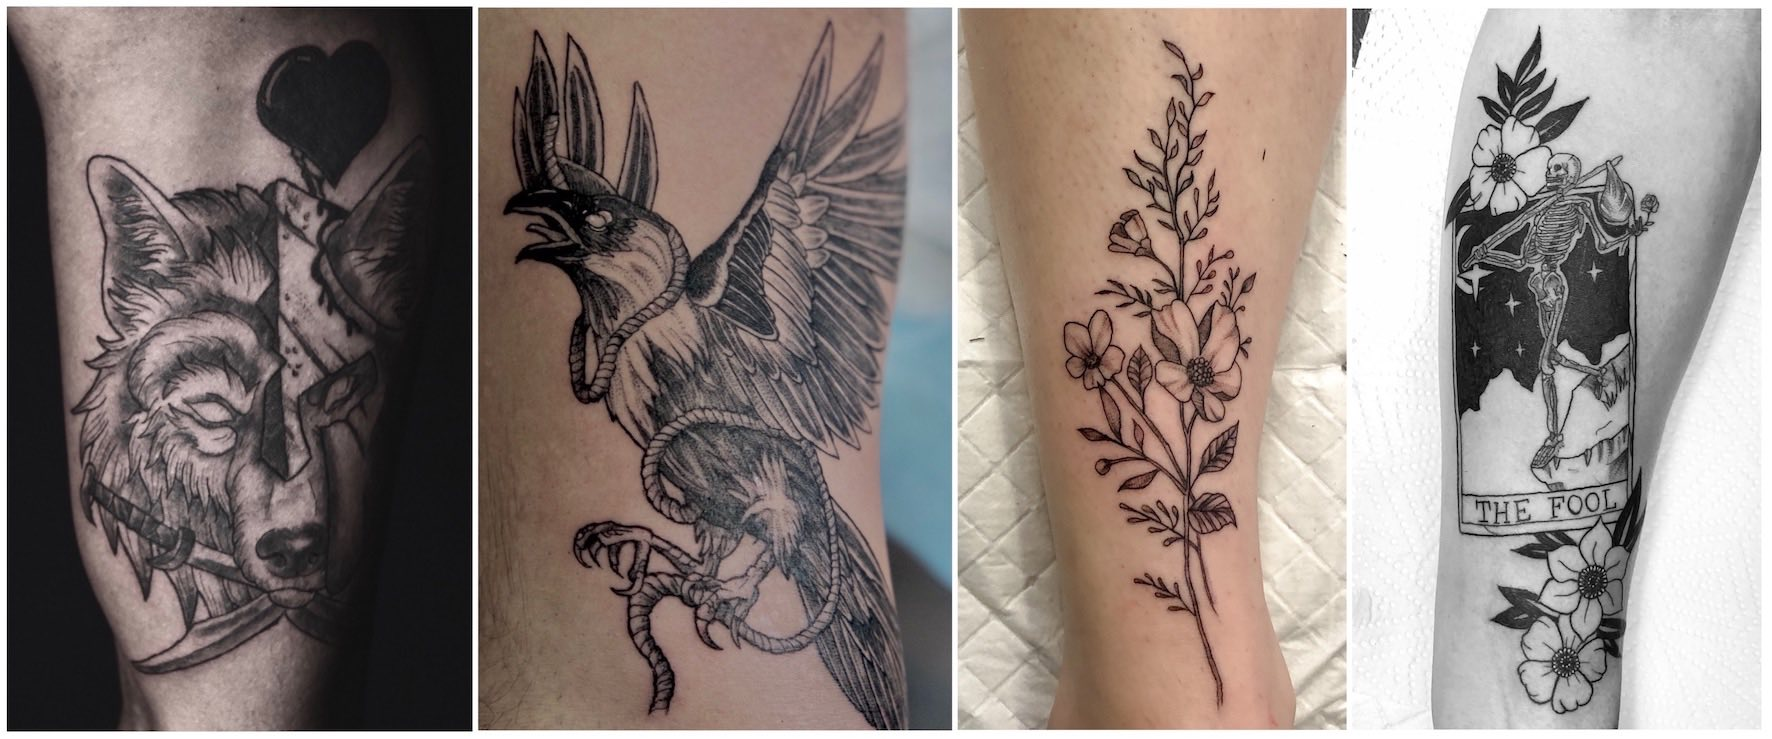 A selection of neo-traditional tattoos done by Nathan Ferreira